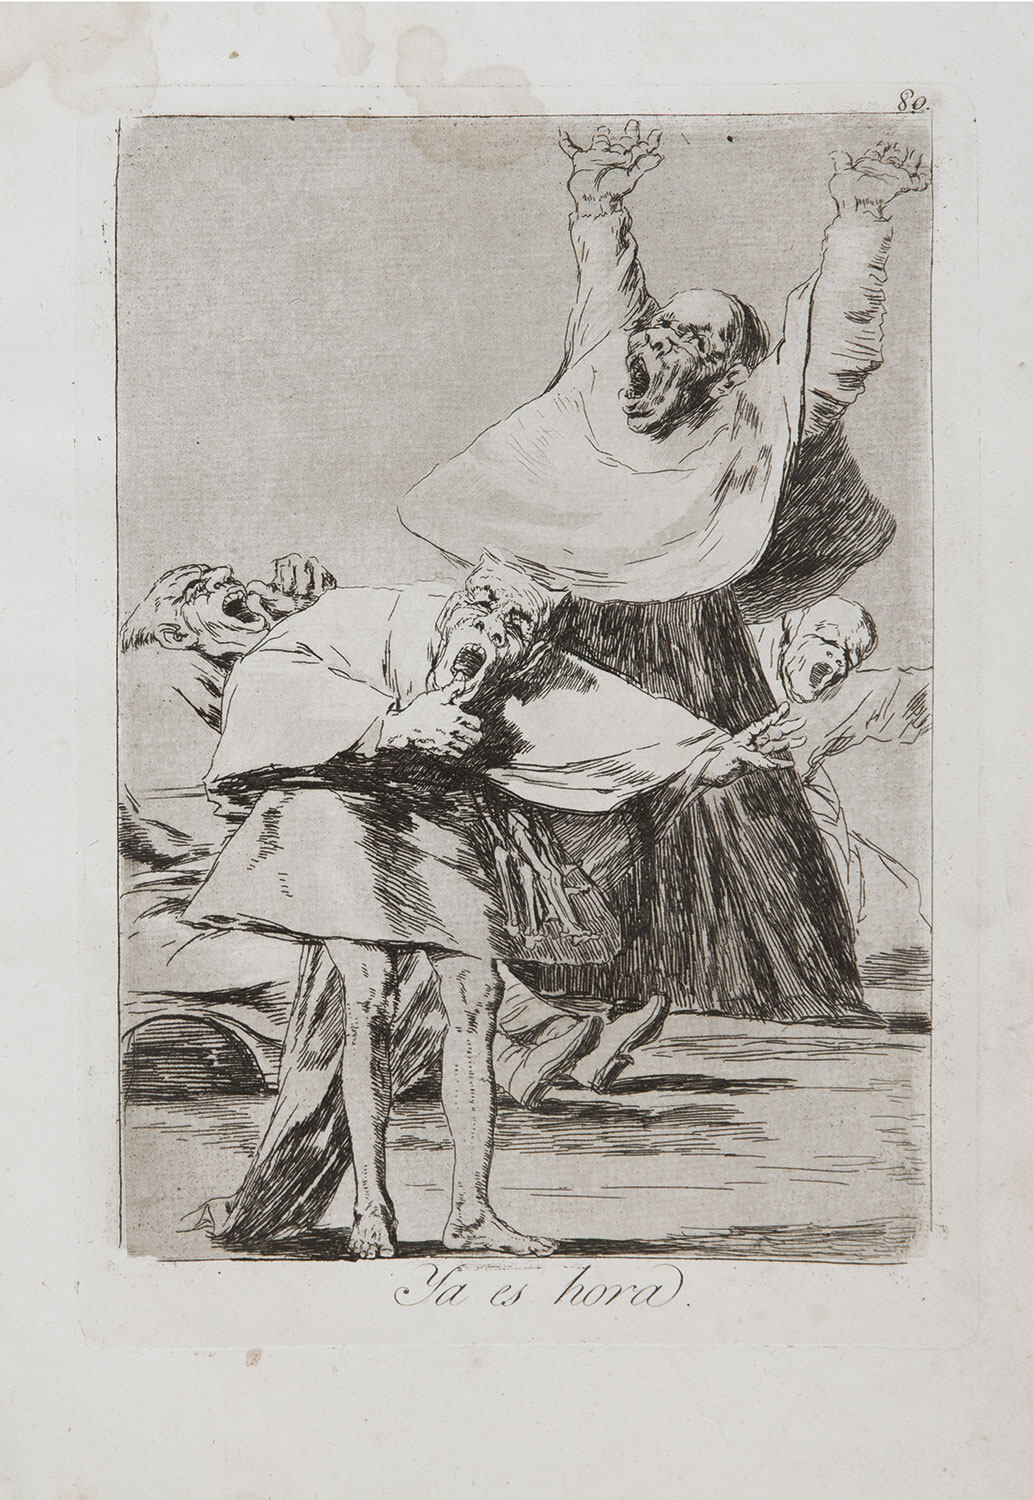 goya and the power of violence essay